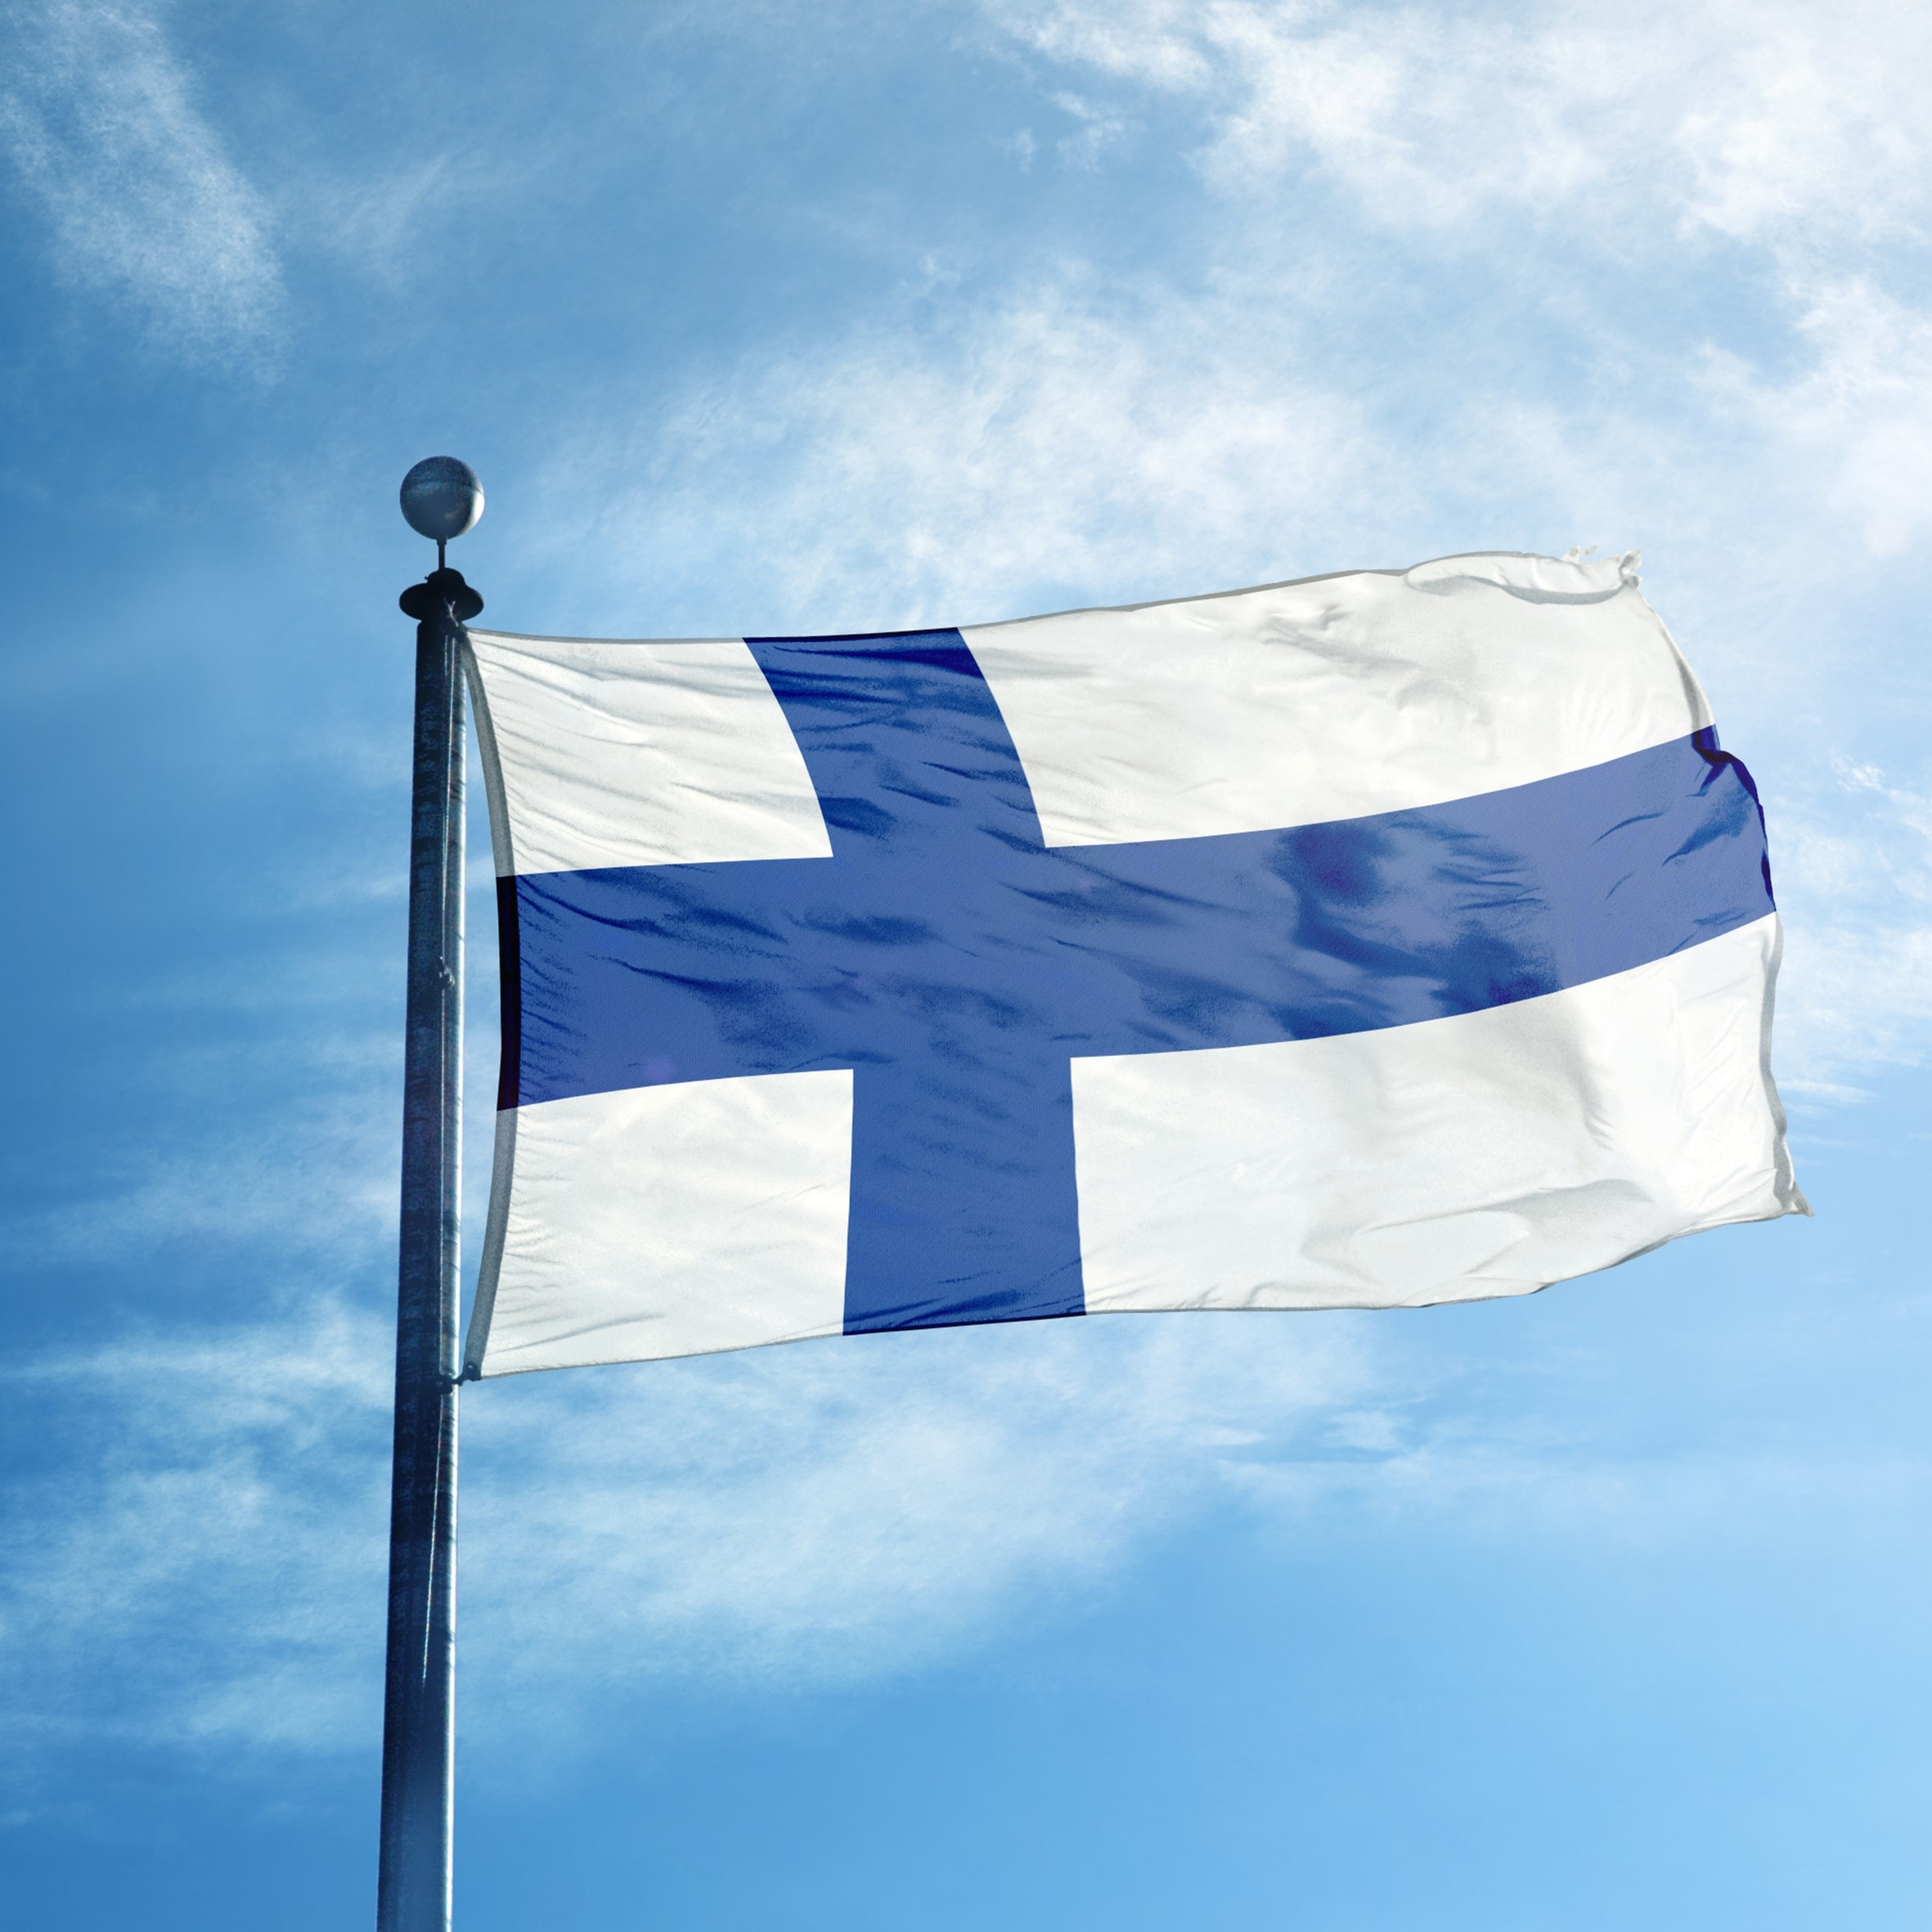 Finland NN - New rules, new game